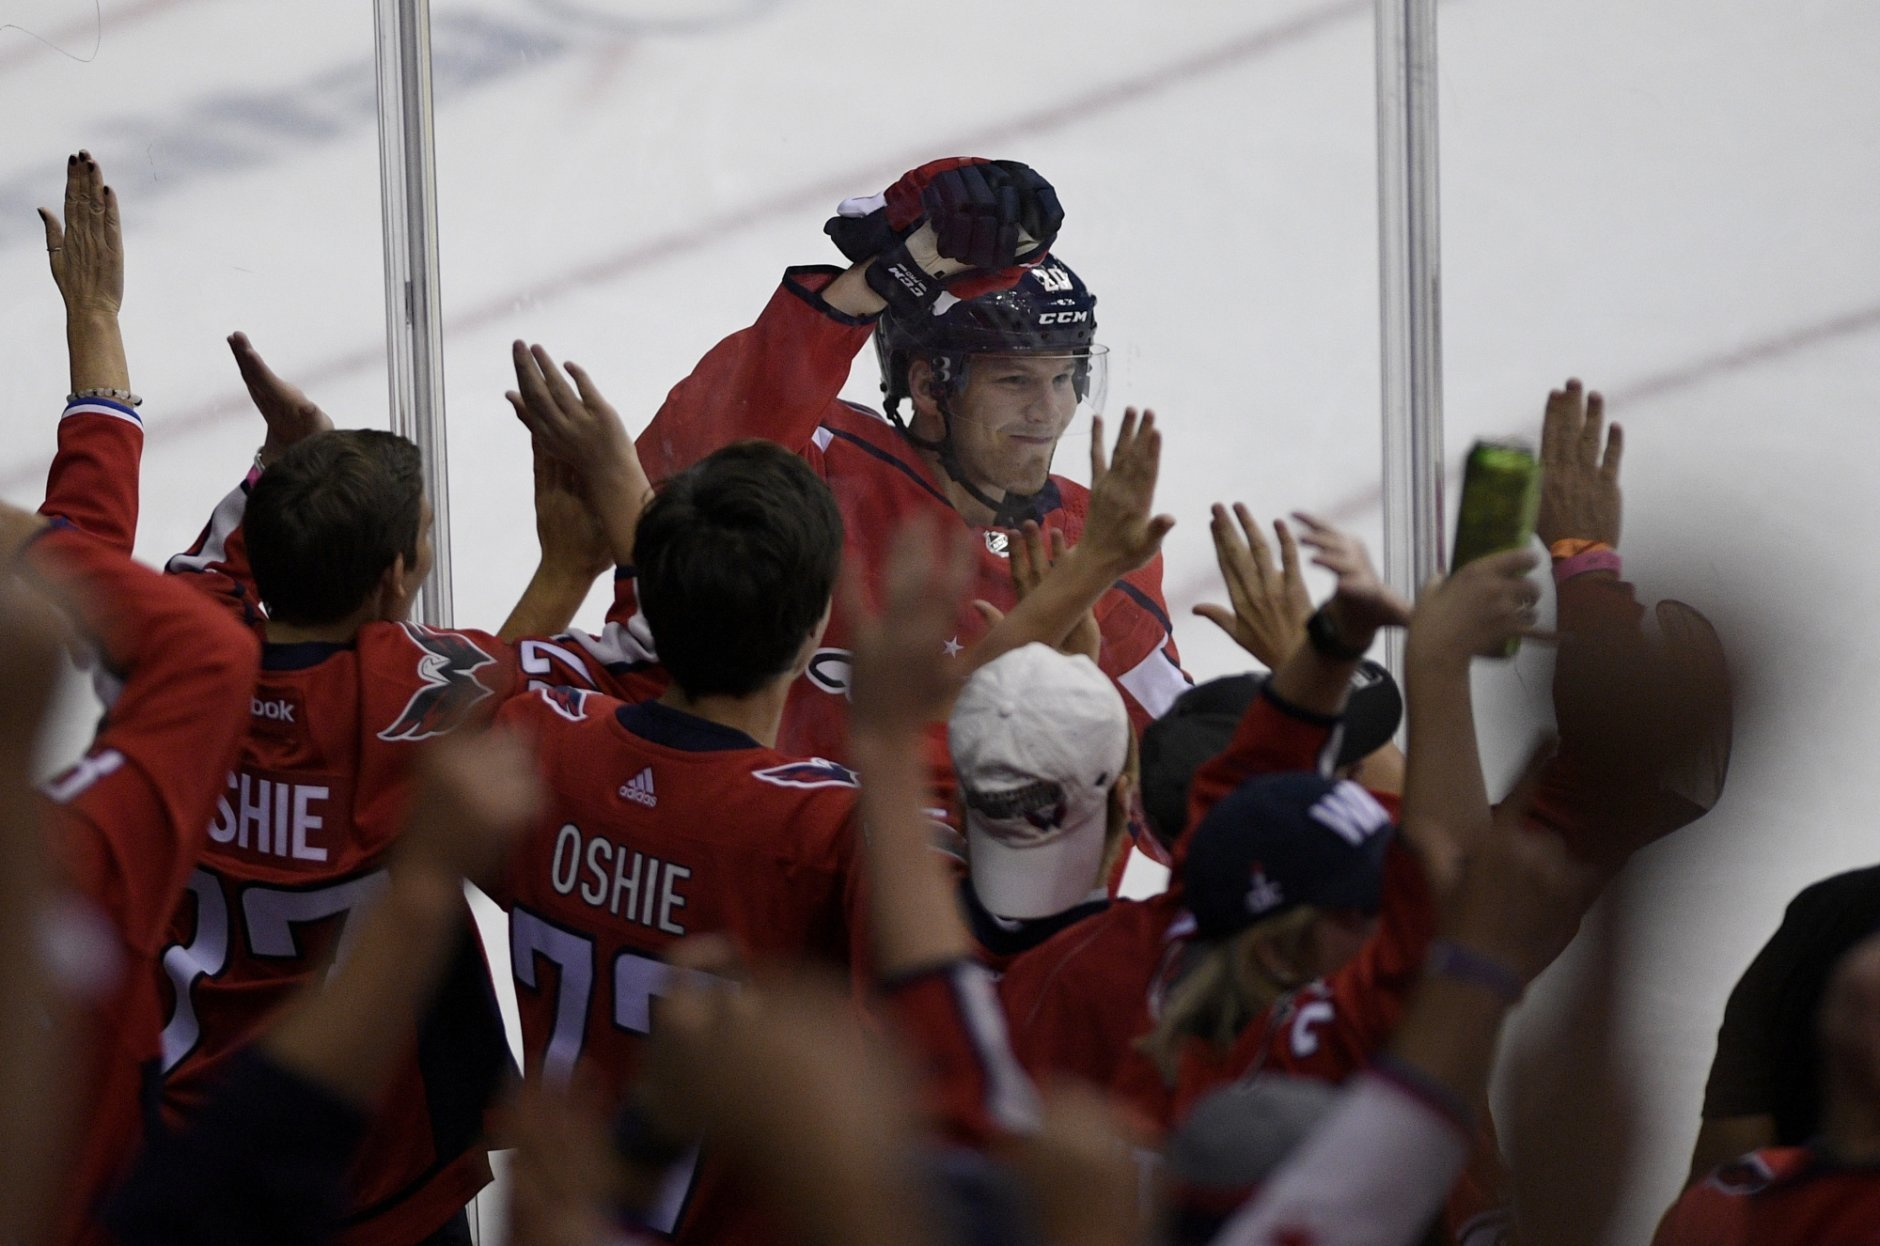 Washington Capitals center Lars Eller (20), of Denmark, celebrates his goal during the third period of the team's NHL hockey game against the Boston Bruins, Wednesday, Oct. 3, 2018, in Washington. The Capitals won 7-0. (AP Photo/Nick Wass)